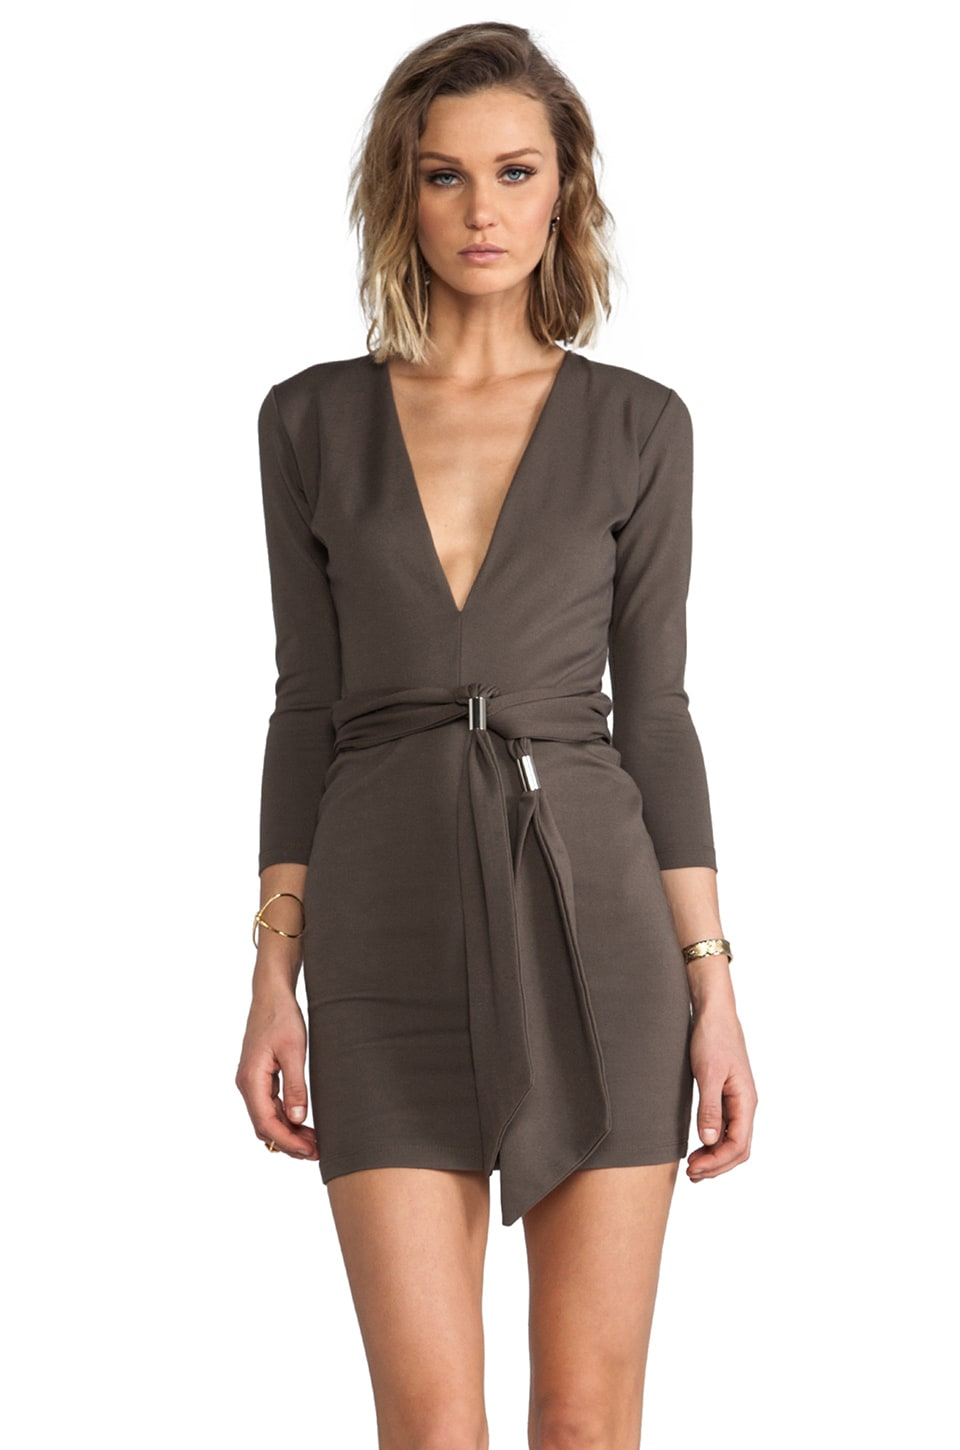 BEC&BRIDGE Exclusive Jaguar Long Sleeve Dress with Tie in Army Green